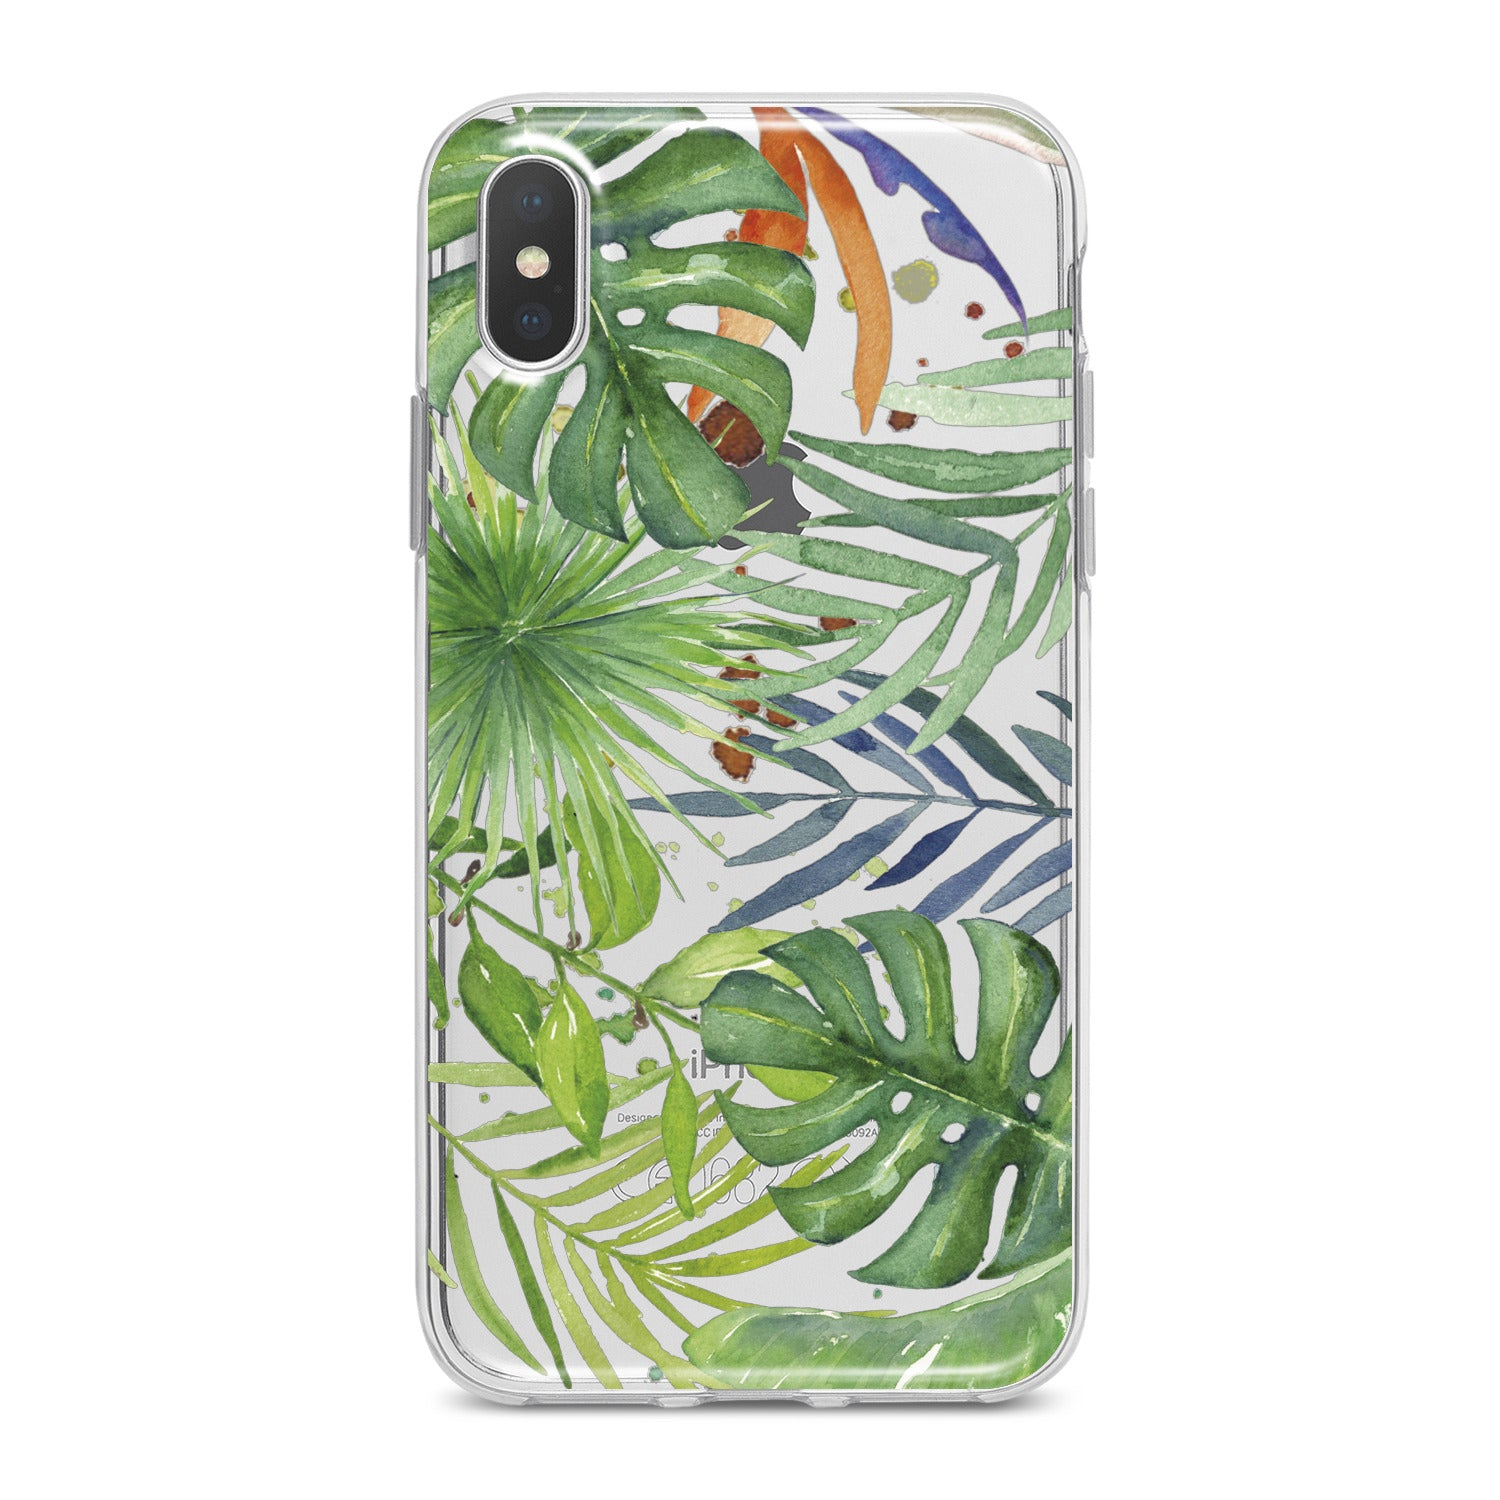 Lex Altern Green Monstera Pattern Phone Case for your iPhone & Android phone.